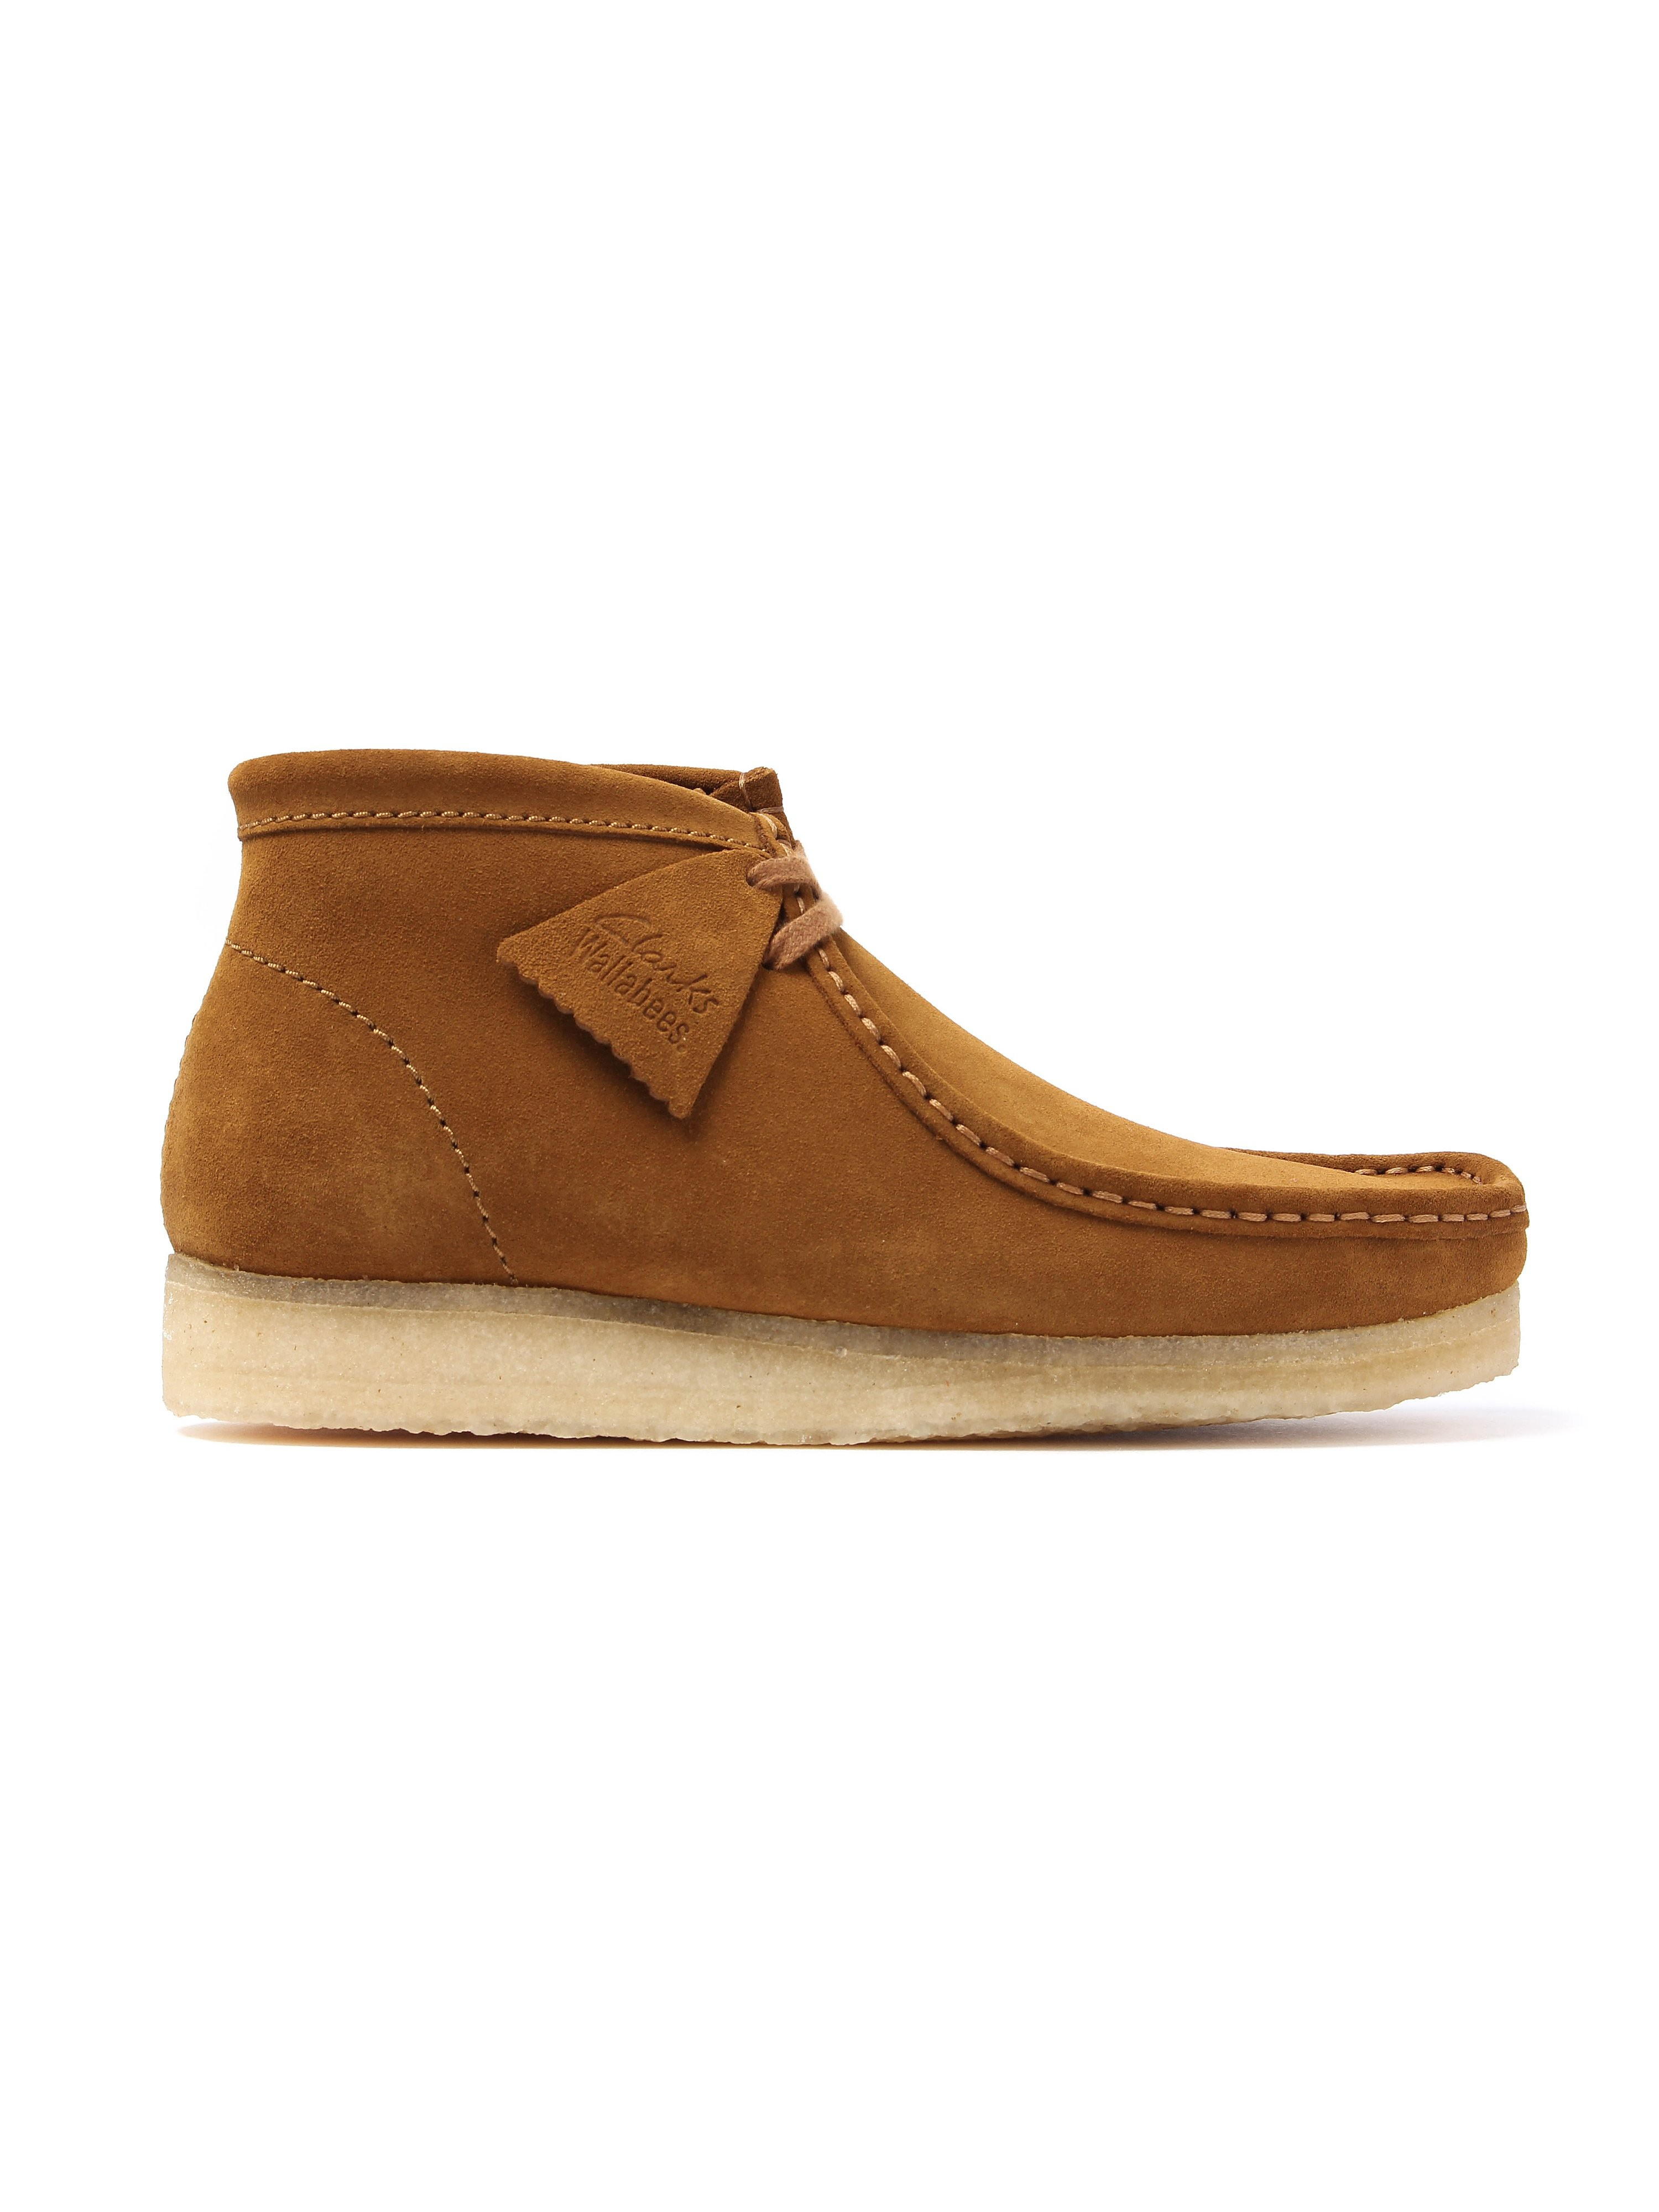 Clarks Originals Wallabee Mens Boot - Bronze Suede